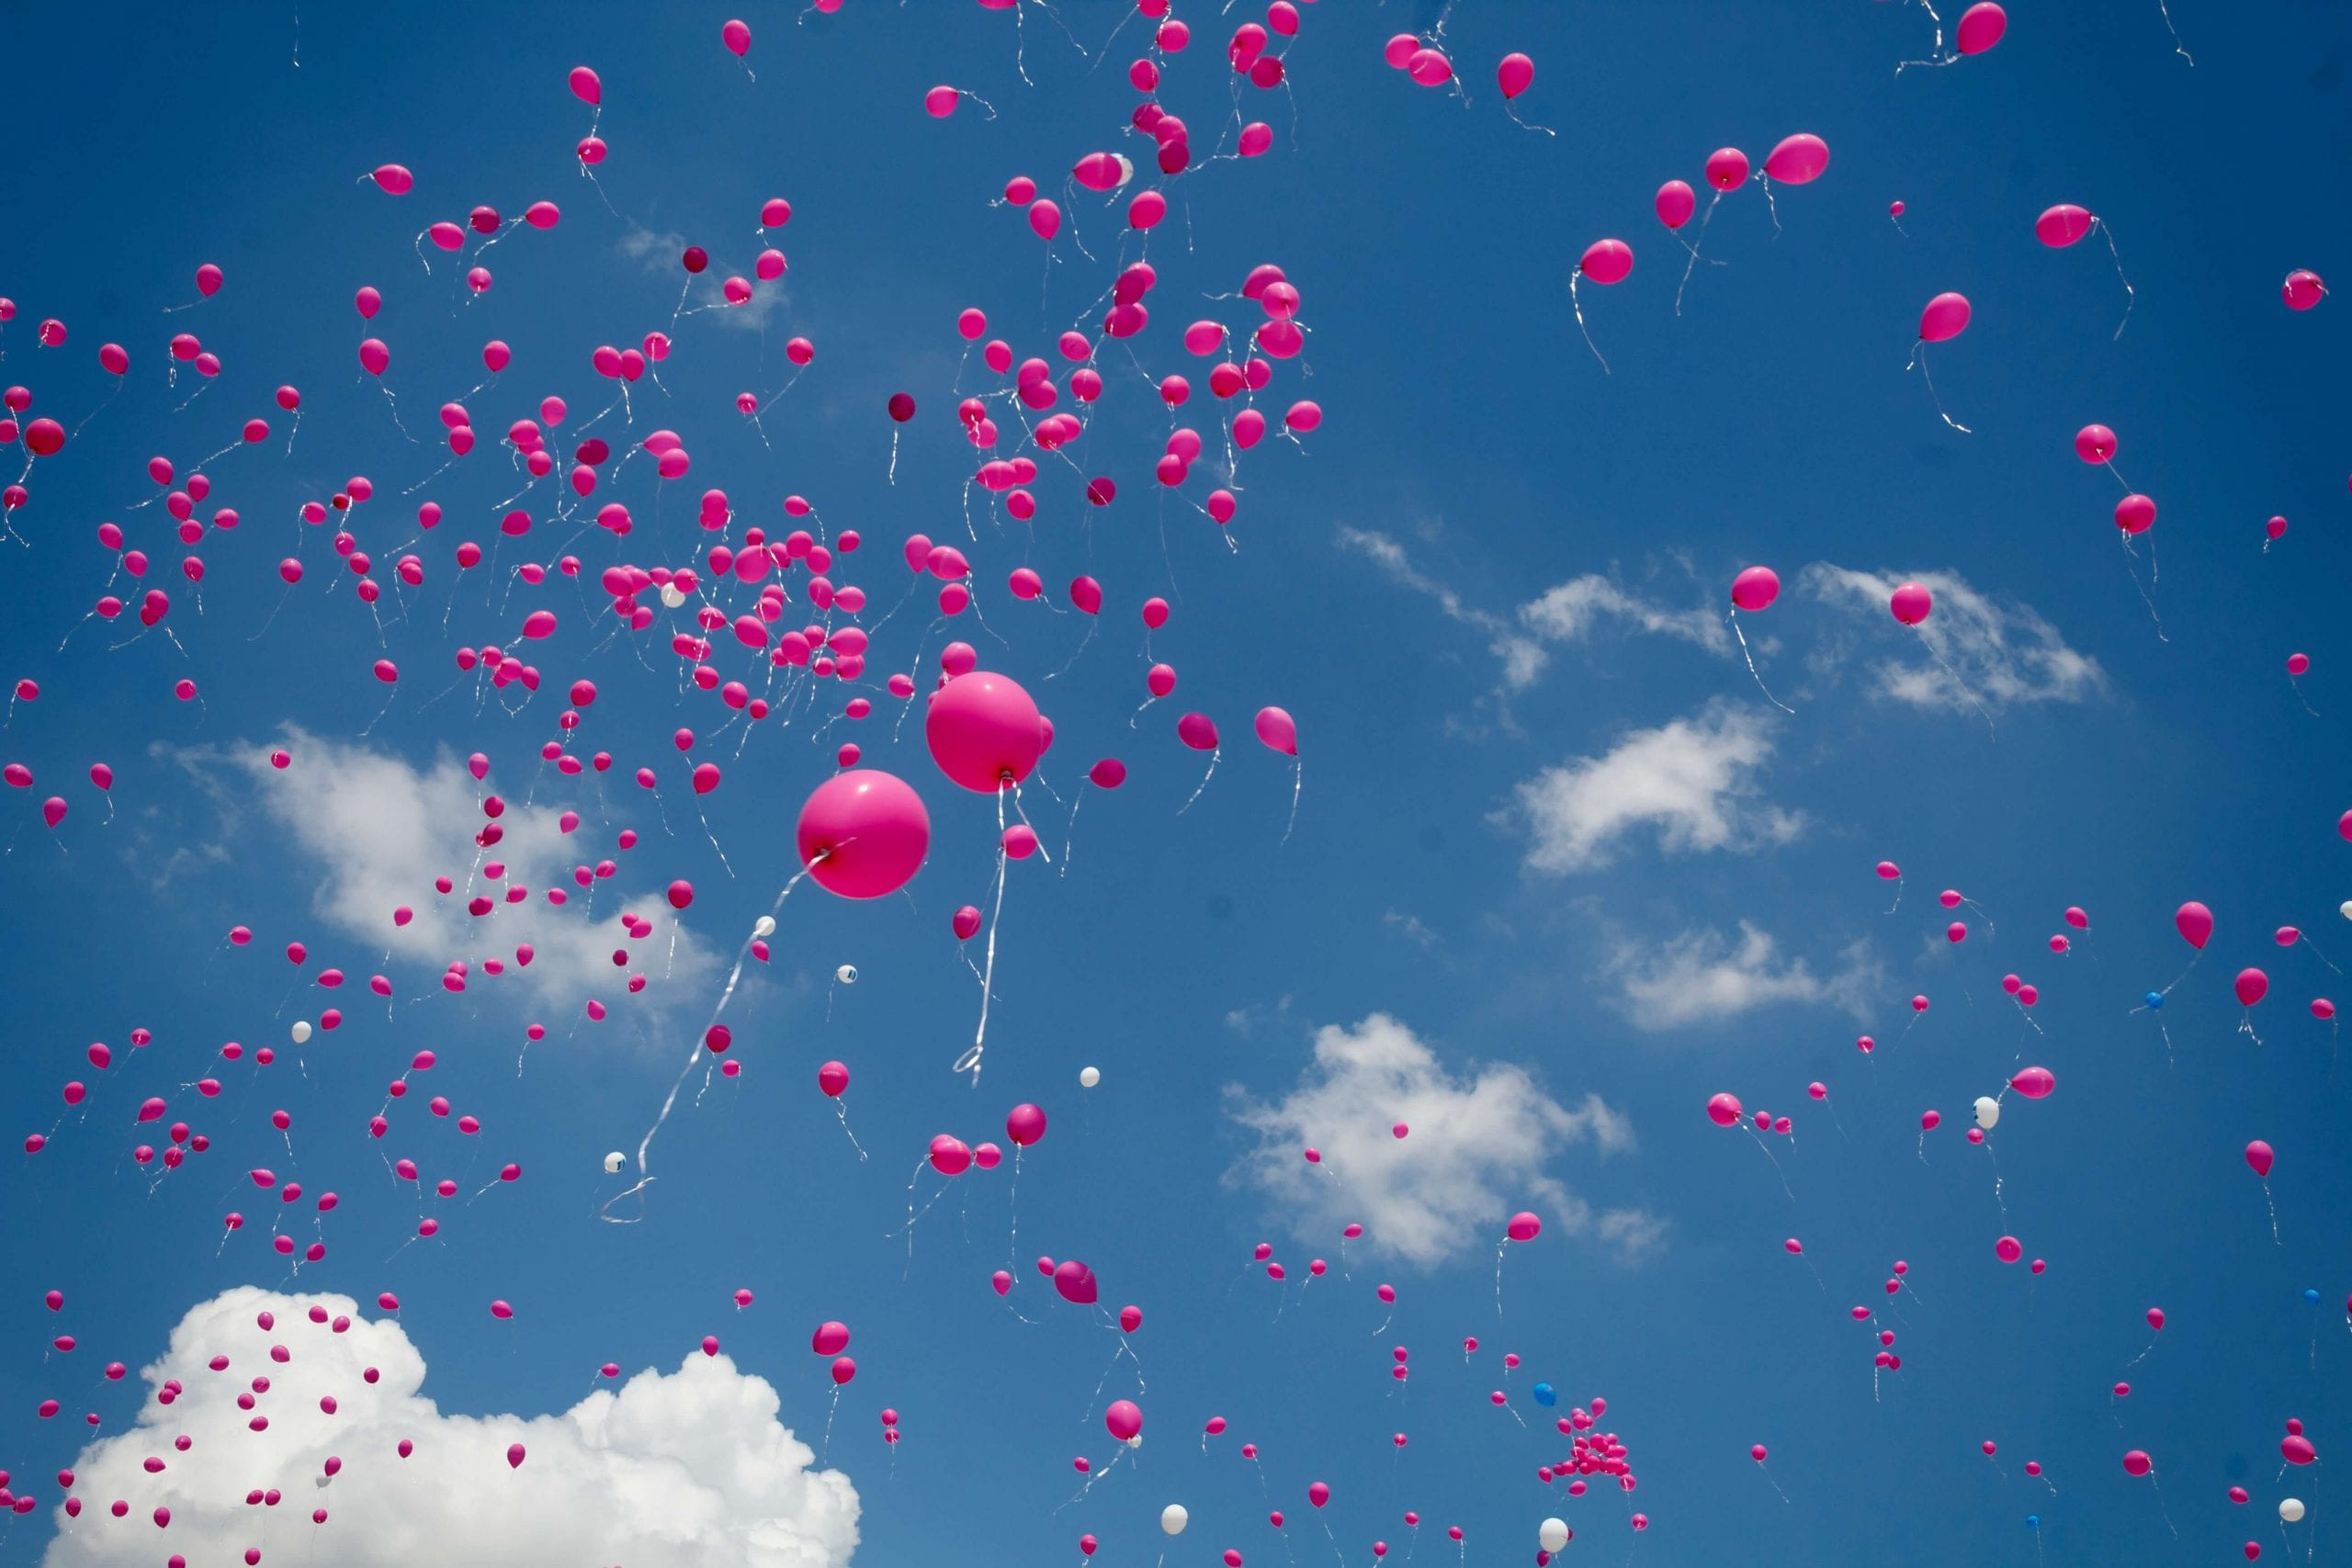 Pink balloons flying